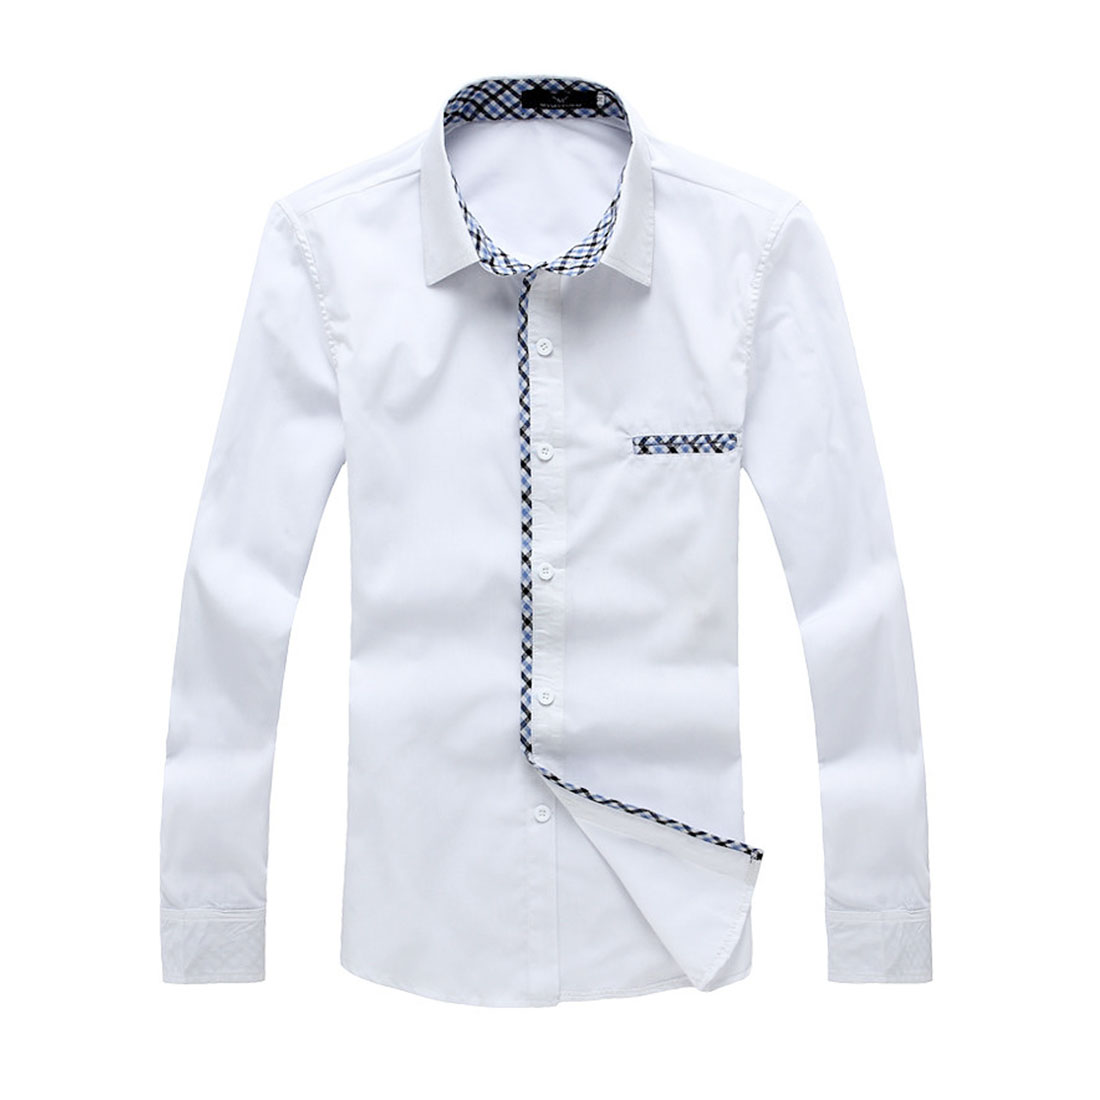 Man Stylish Chest Pockets Decor Buttons Cuff Shirt White S